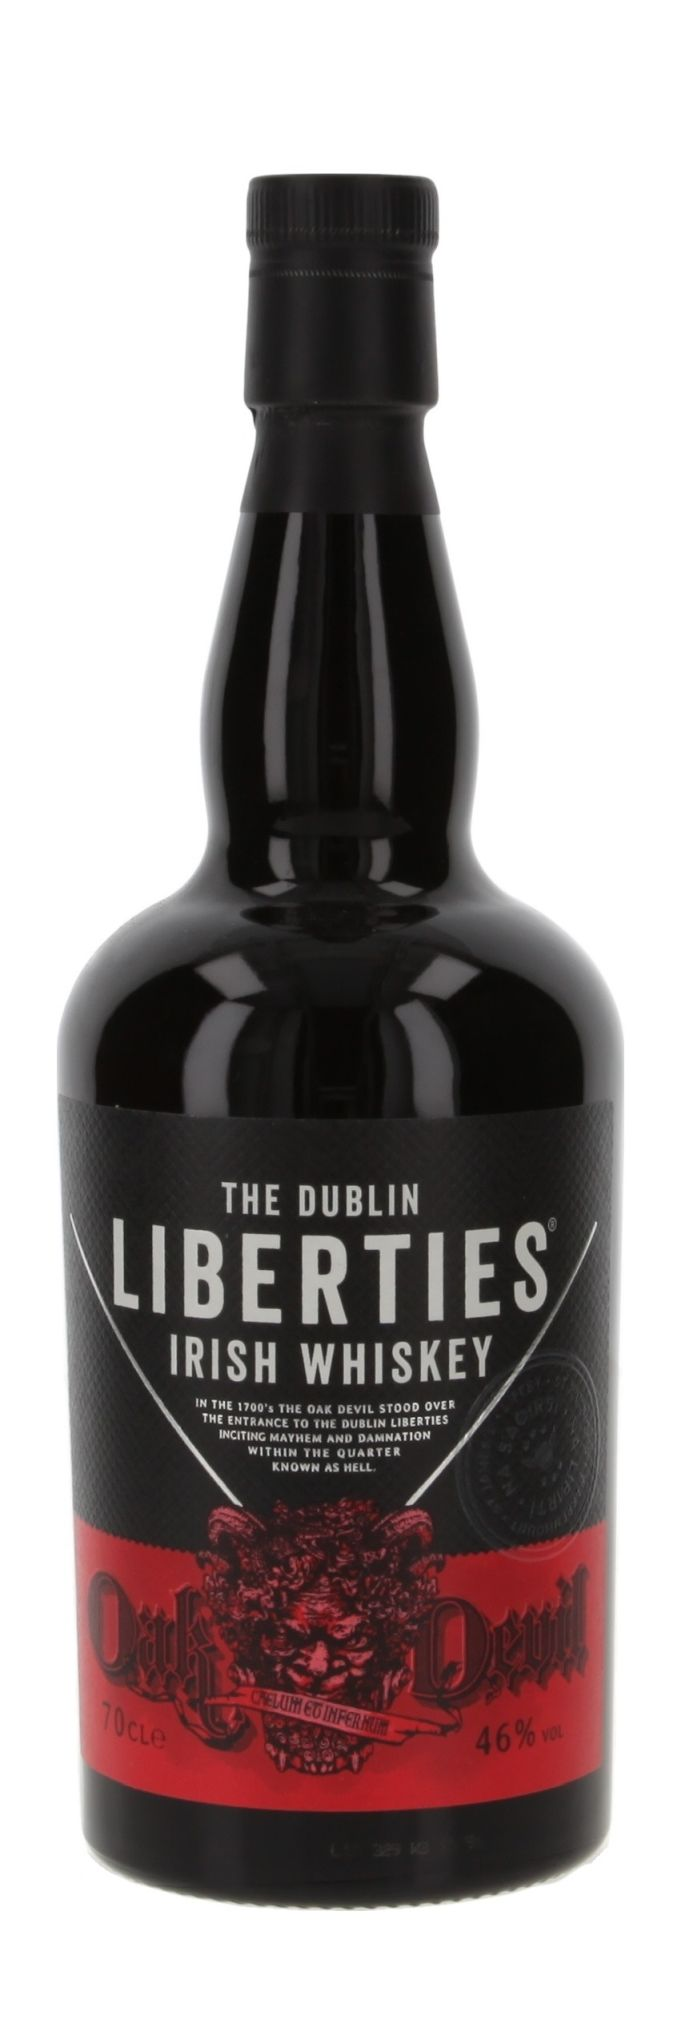 Dublin Liberties Oak Devil